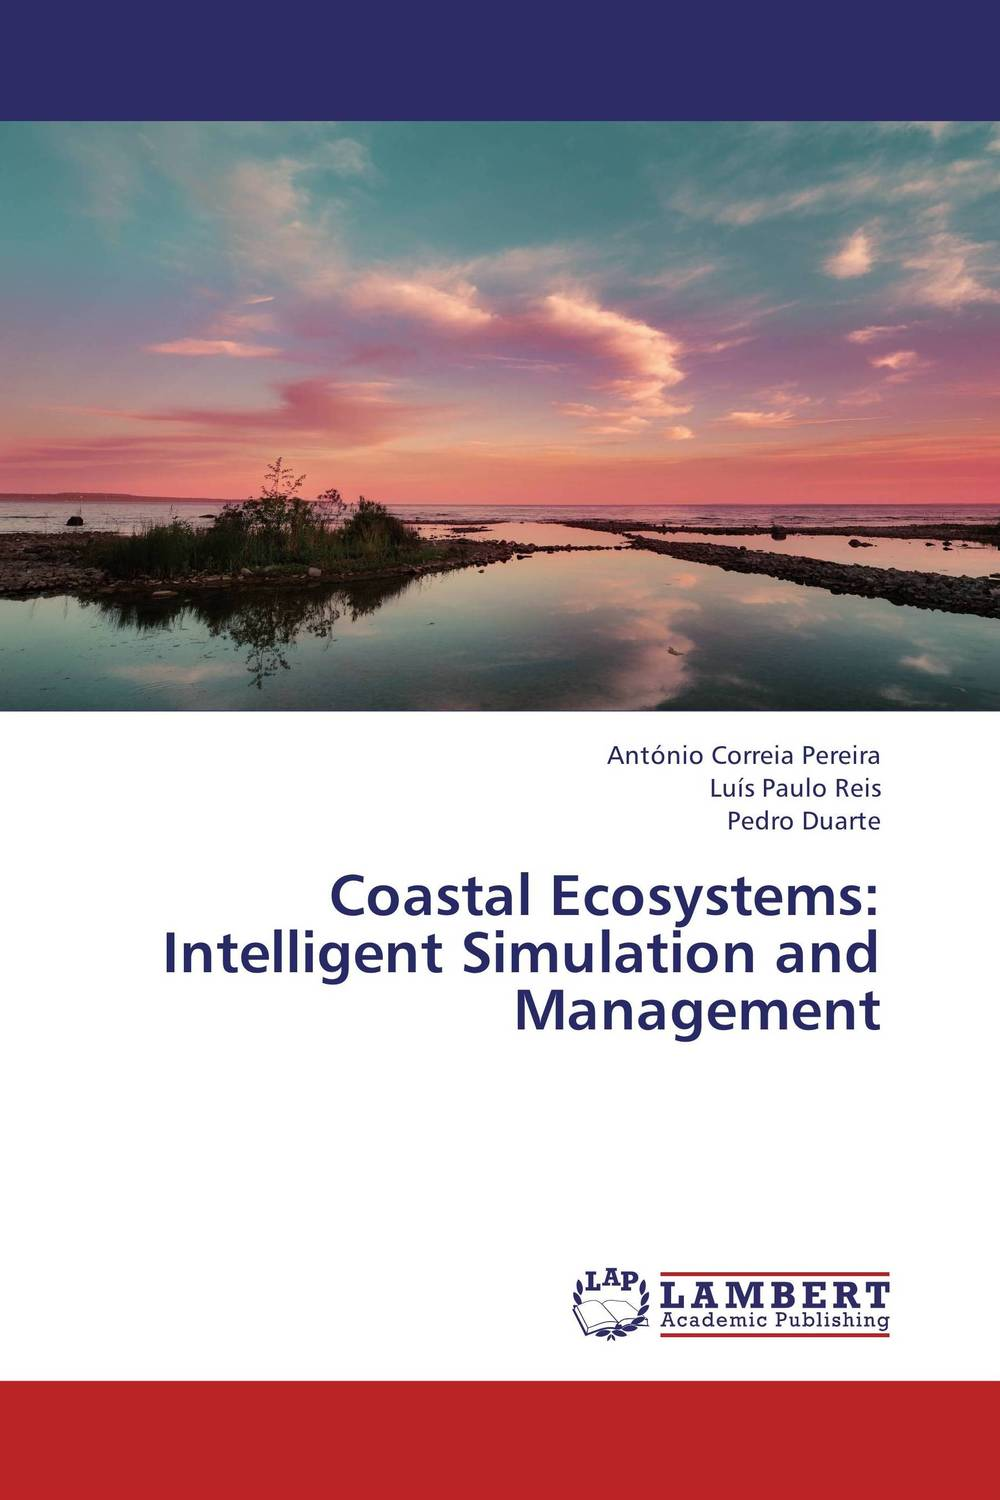 Coastal Ecosystems: Intelligent Simulation and Management muhammad zaheer khan and babar hussain reptiles of coastal areas of karachi